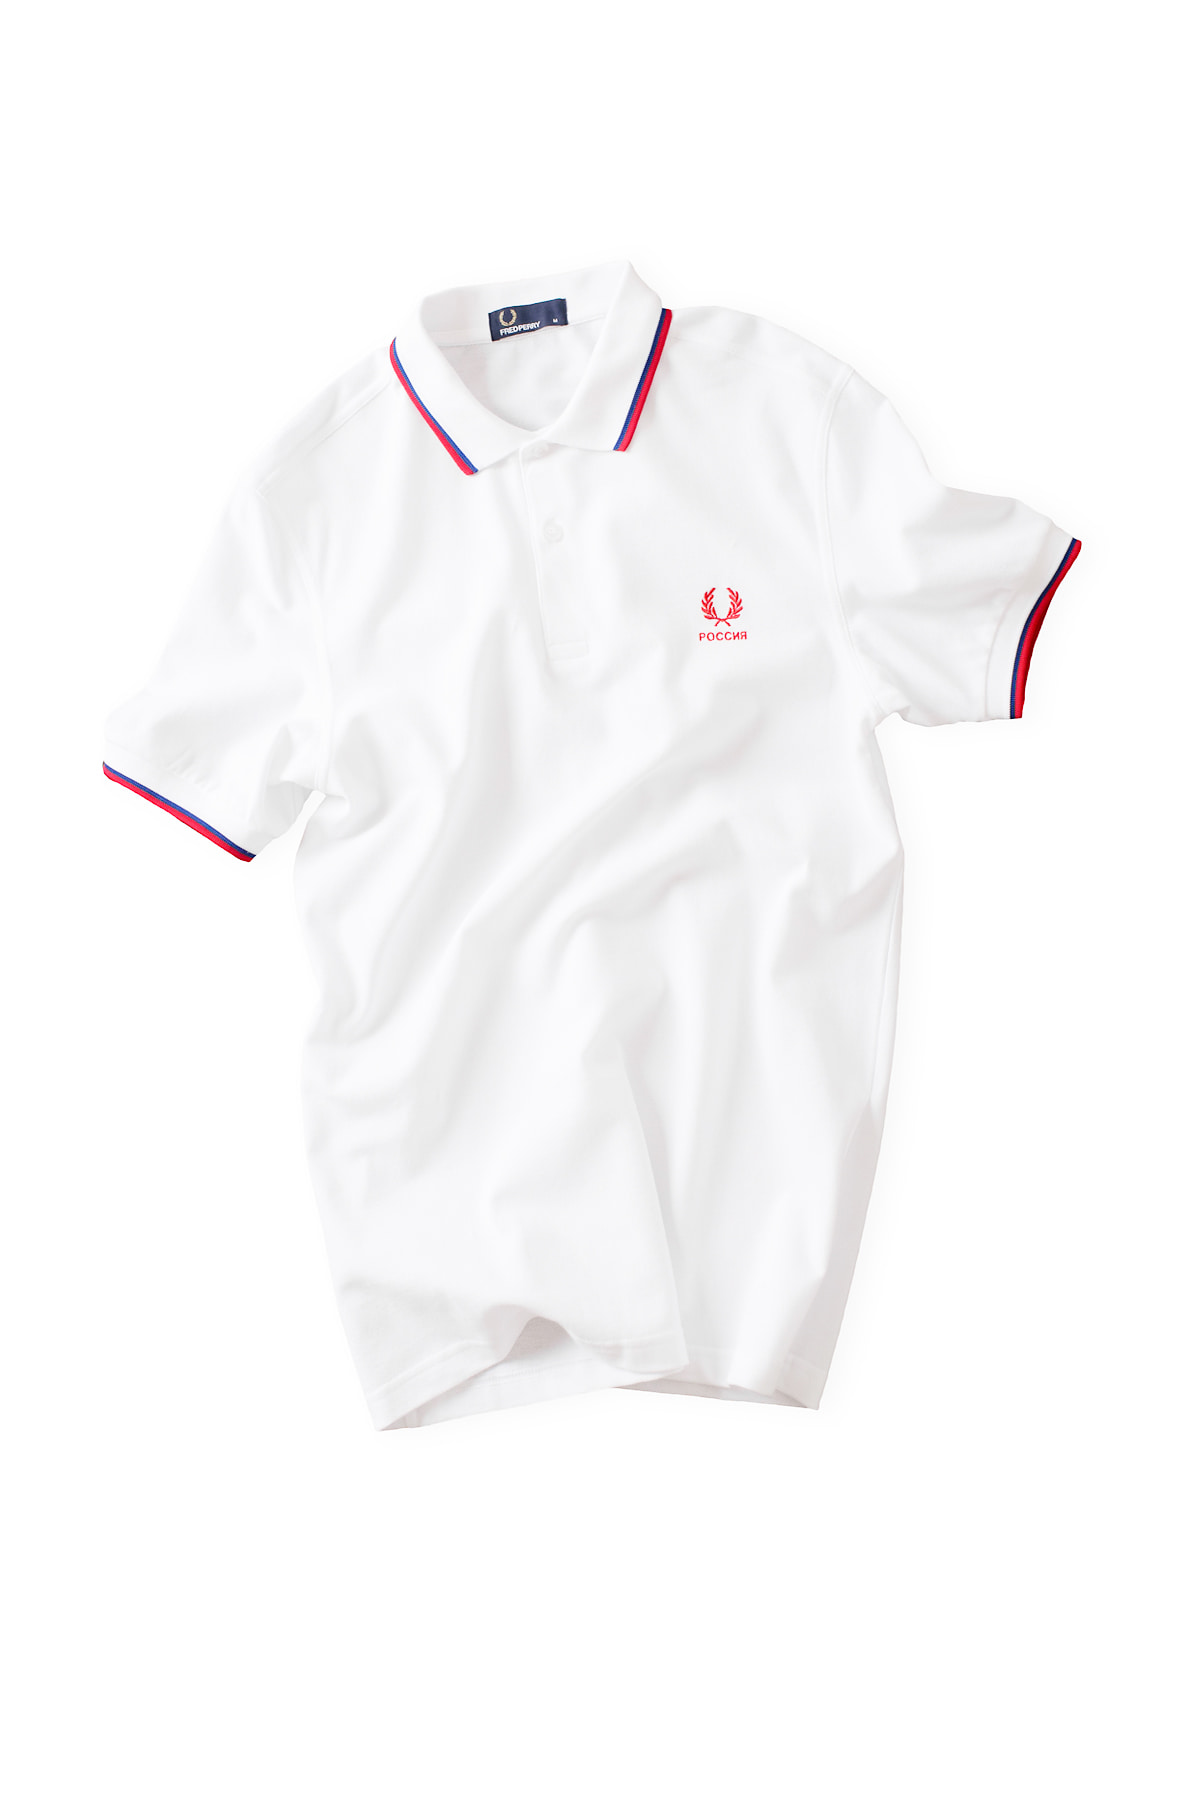 FRED PERRY : The Country Shirt RUSSIA (White)